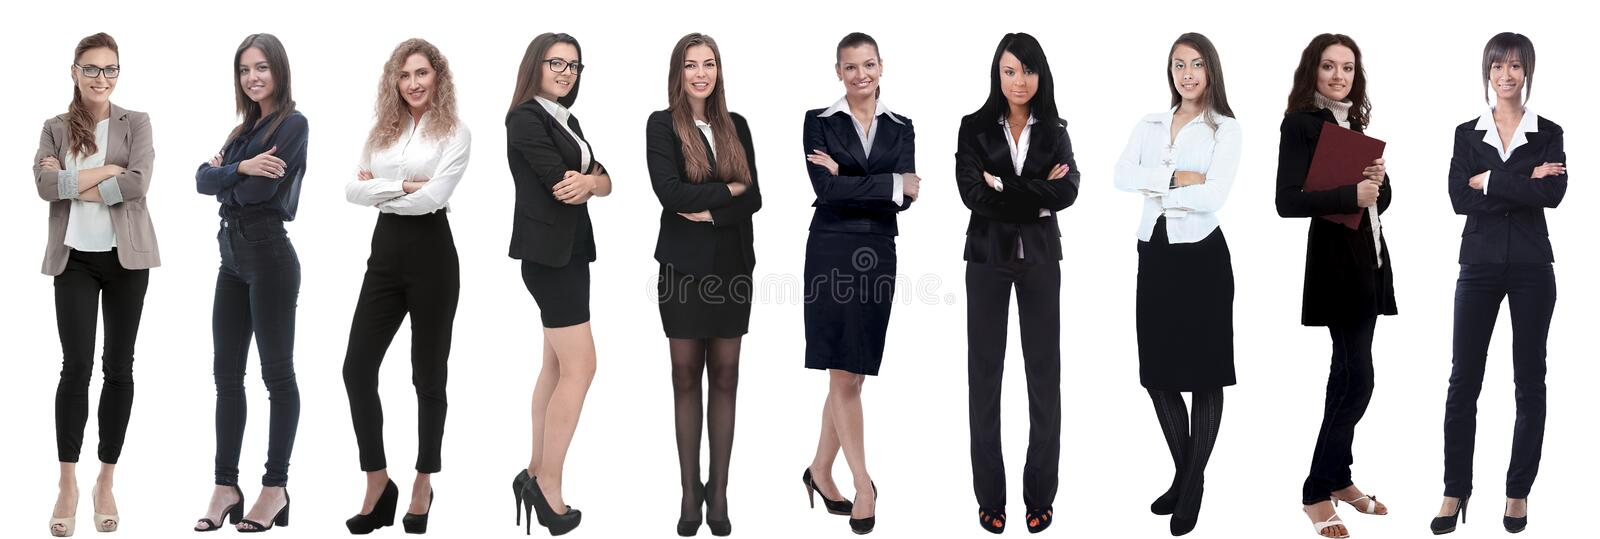 Panoramic collage of a group of successful young business women. stock image